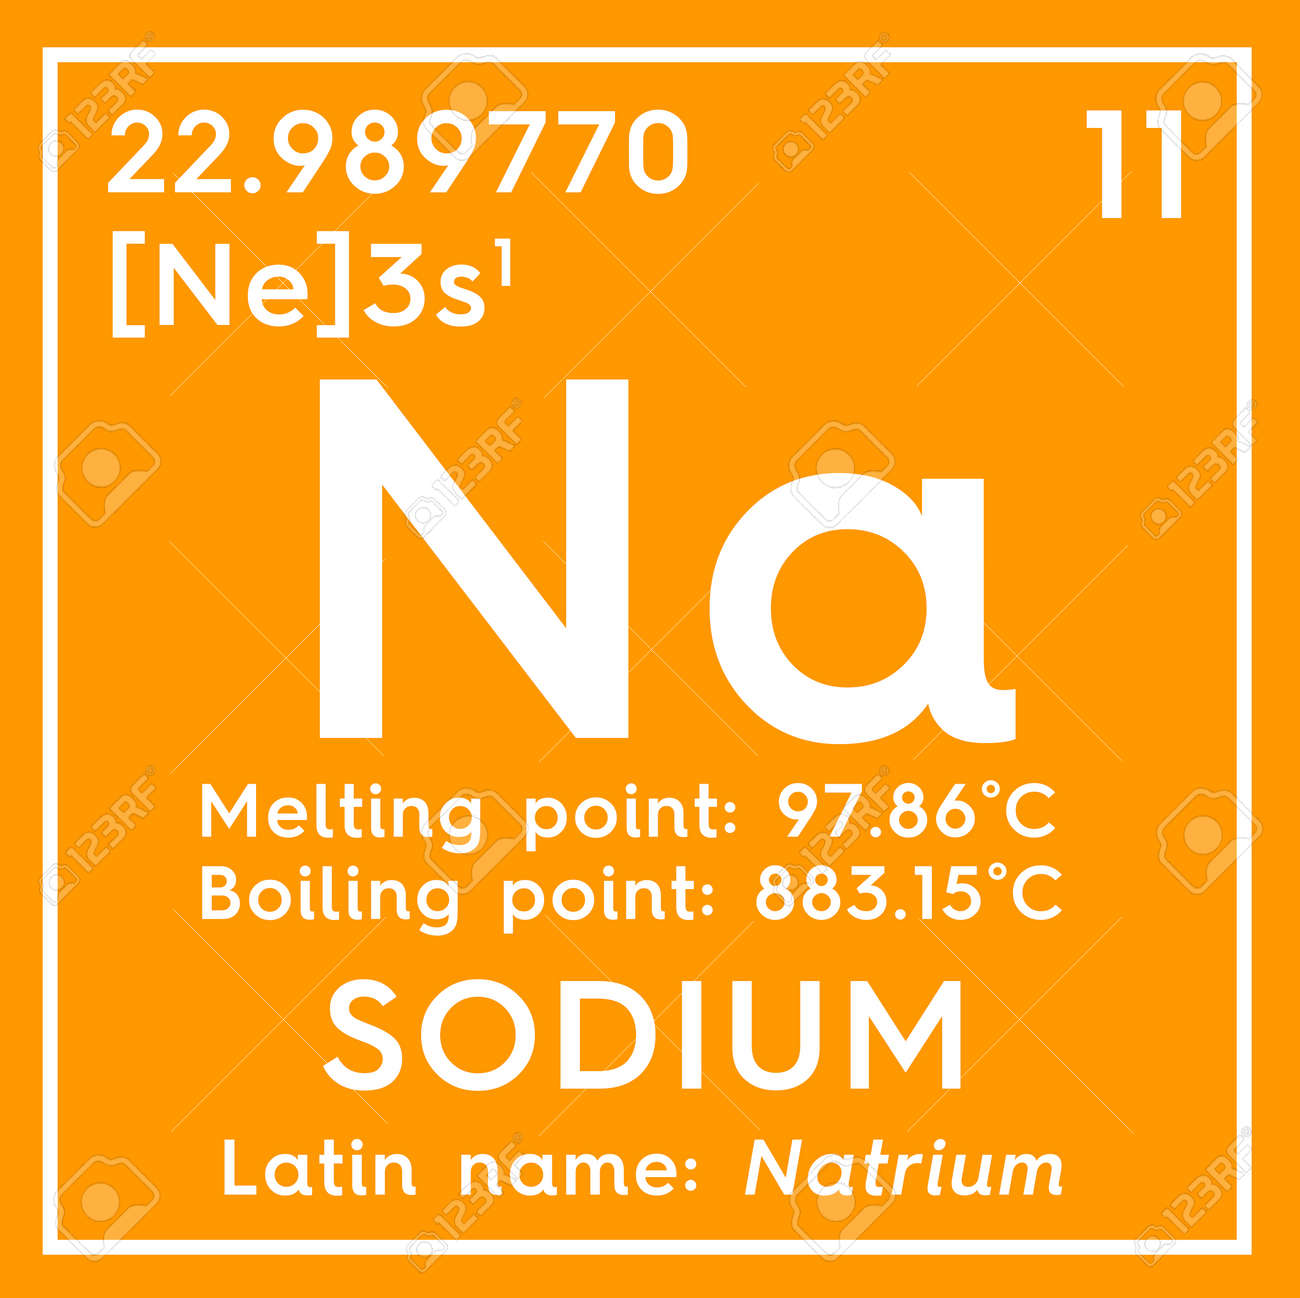 Periodic table sodium chloride images periodic table images sodium abbreviation periodic table images periodic table images sodium chloride periodic table gallery periodic table images gamestrikefo Images